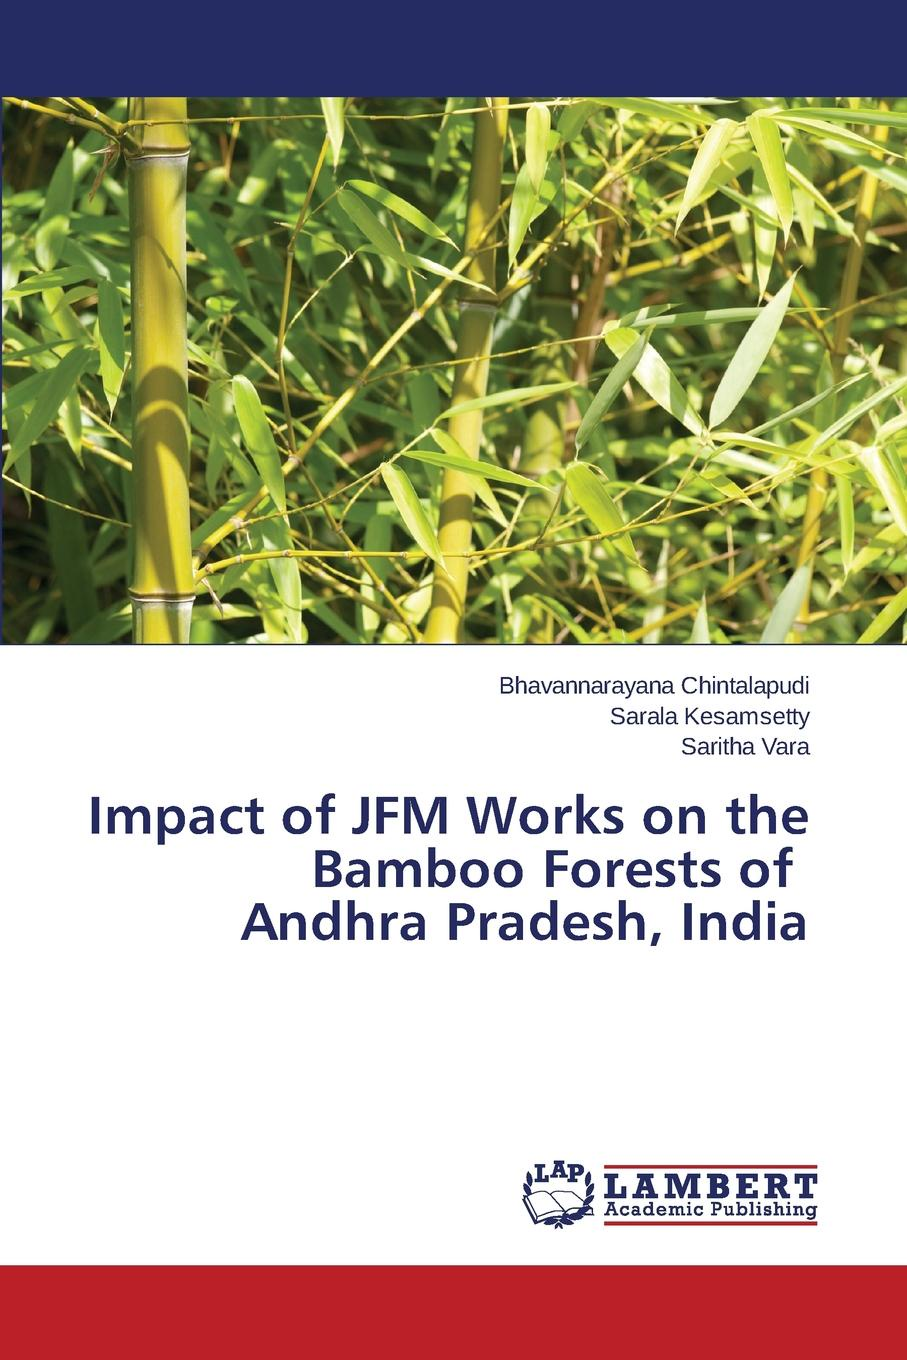 купить Chintalapudi Bhavannarayana, Kesamsetty Sarala, Vara Saritha Impact of JFM Works on the Bamboo Forests of Andhra Pradesh, India по цене 5352 рублей